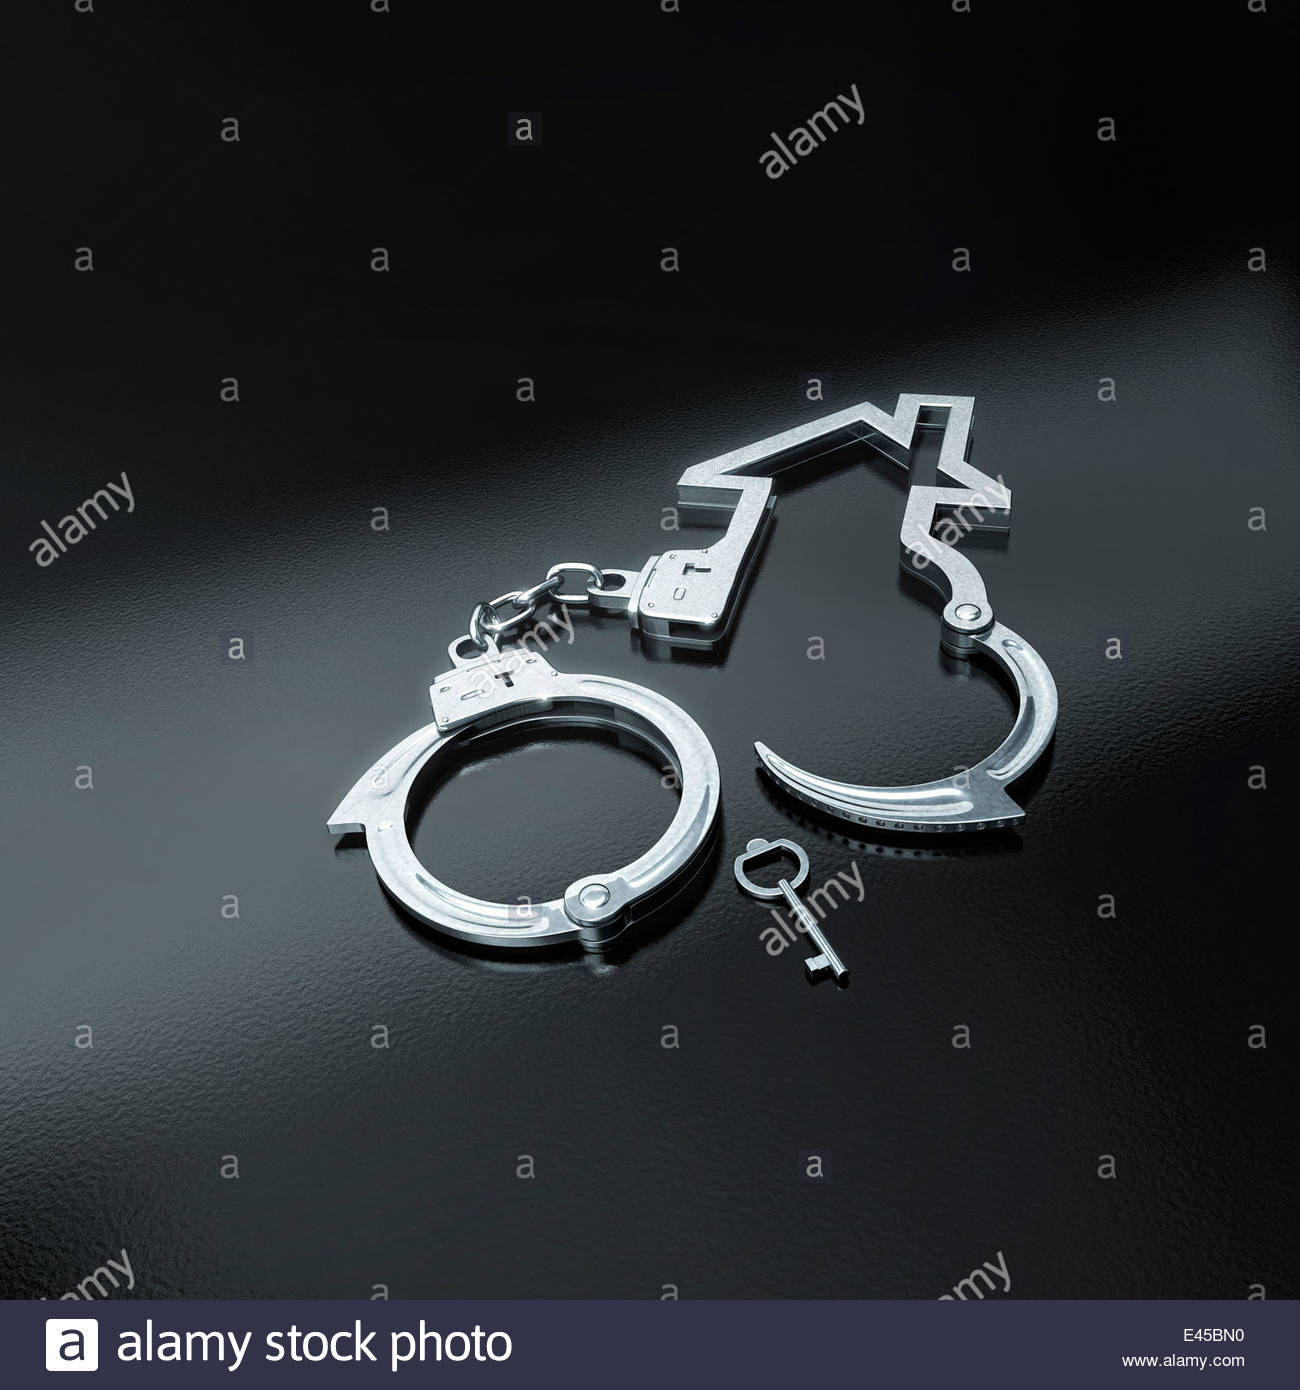 Outline of house in handcuffs - Stock Image